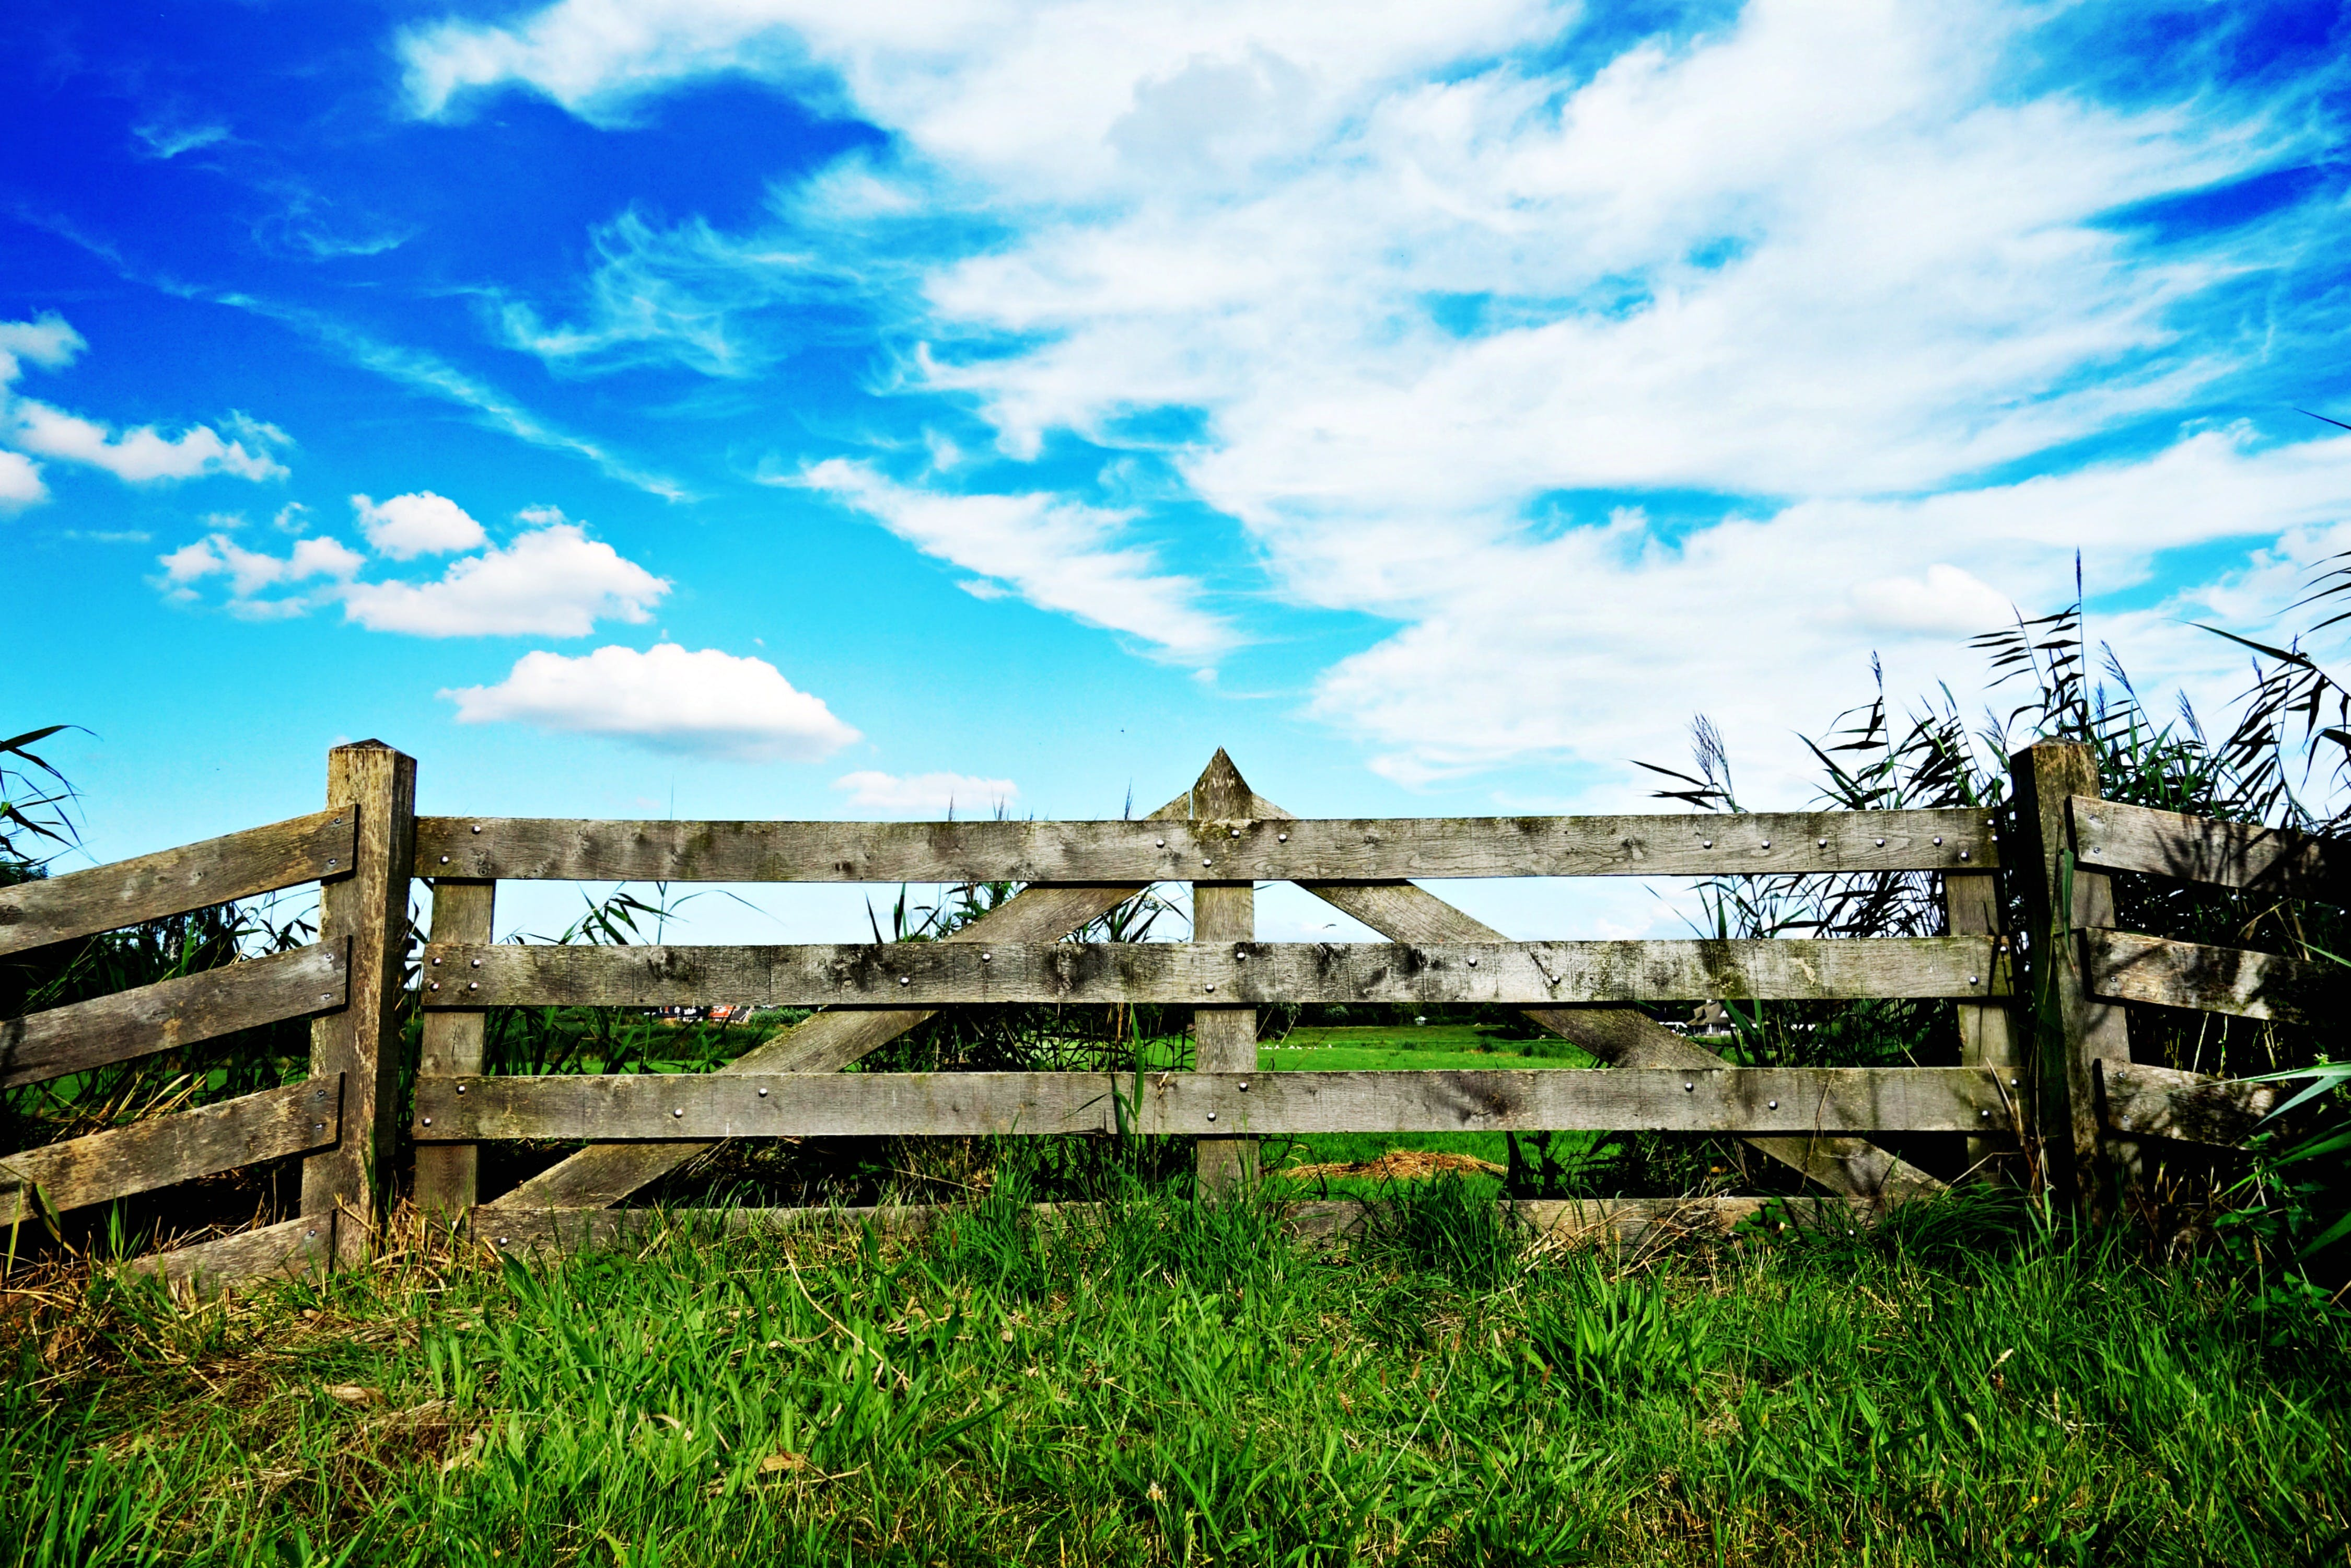 Free stock photo of sky, field, fence, gate